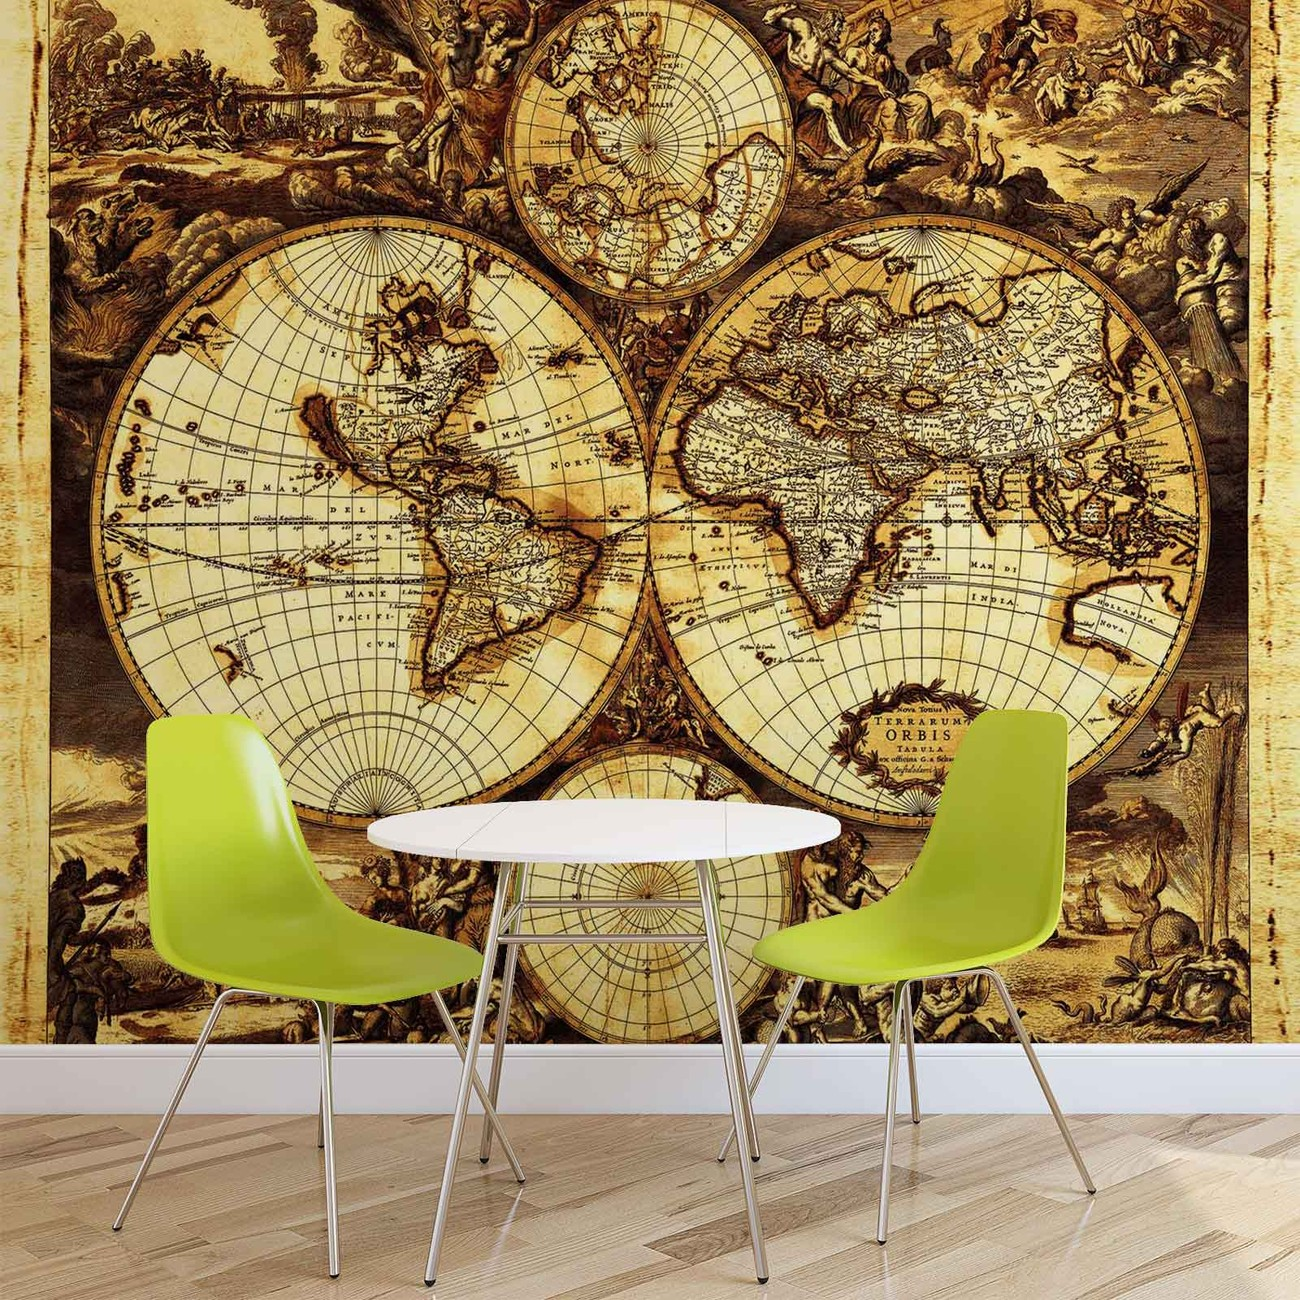 World map vintage wall paper mural buy at europosters for Antique world map mural